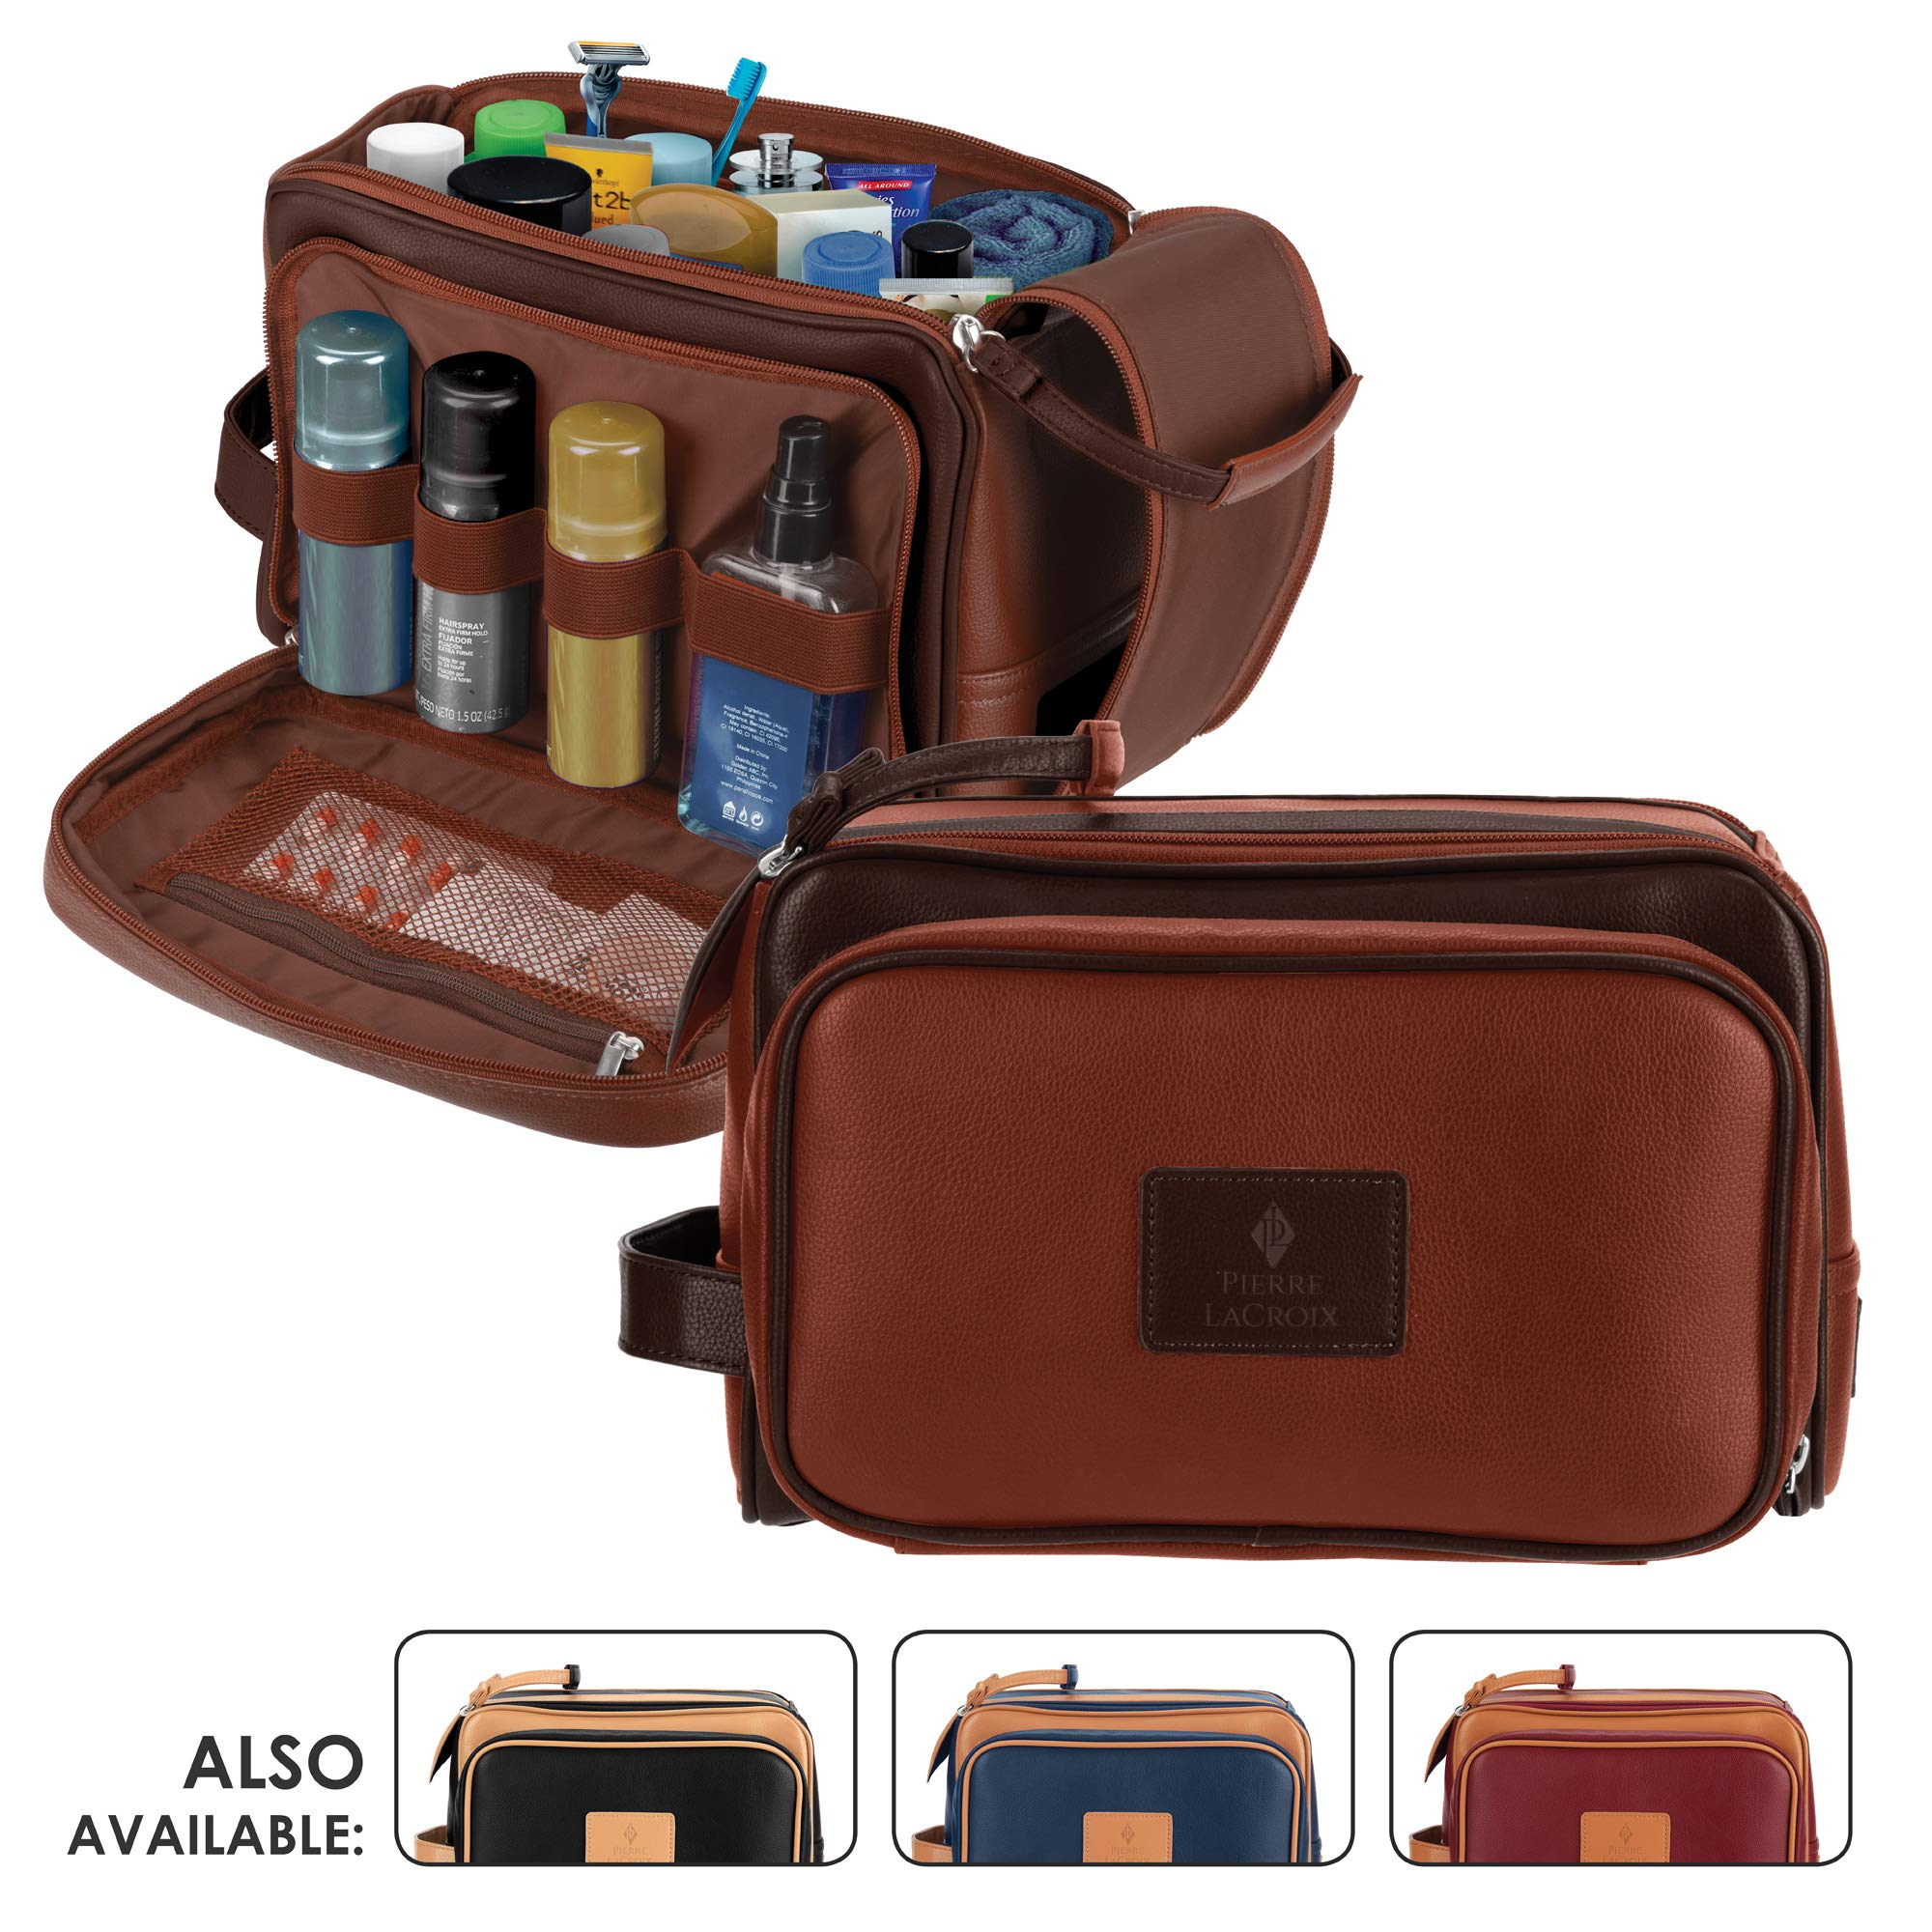 Cruelty-Free Leather Travel Toiletry Bag/Dopp Kit by Pierre LaCroix | Hand-Stitched Using Premium PU Leather and YKK Zippers | Leak Proof | (11''x7''x7'') by Pierre LaCroix